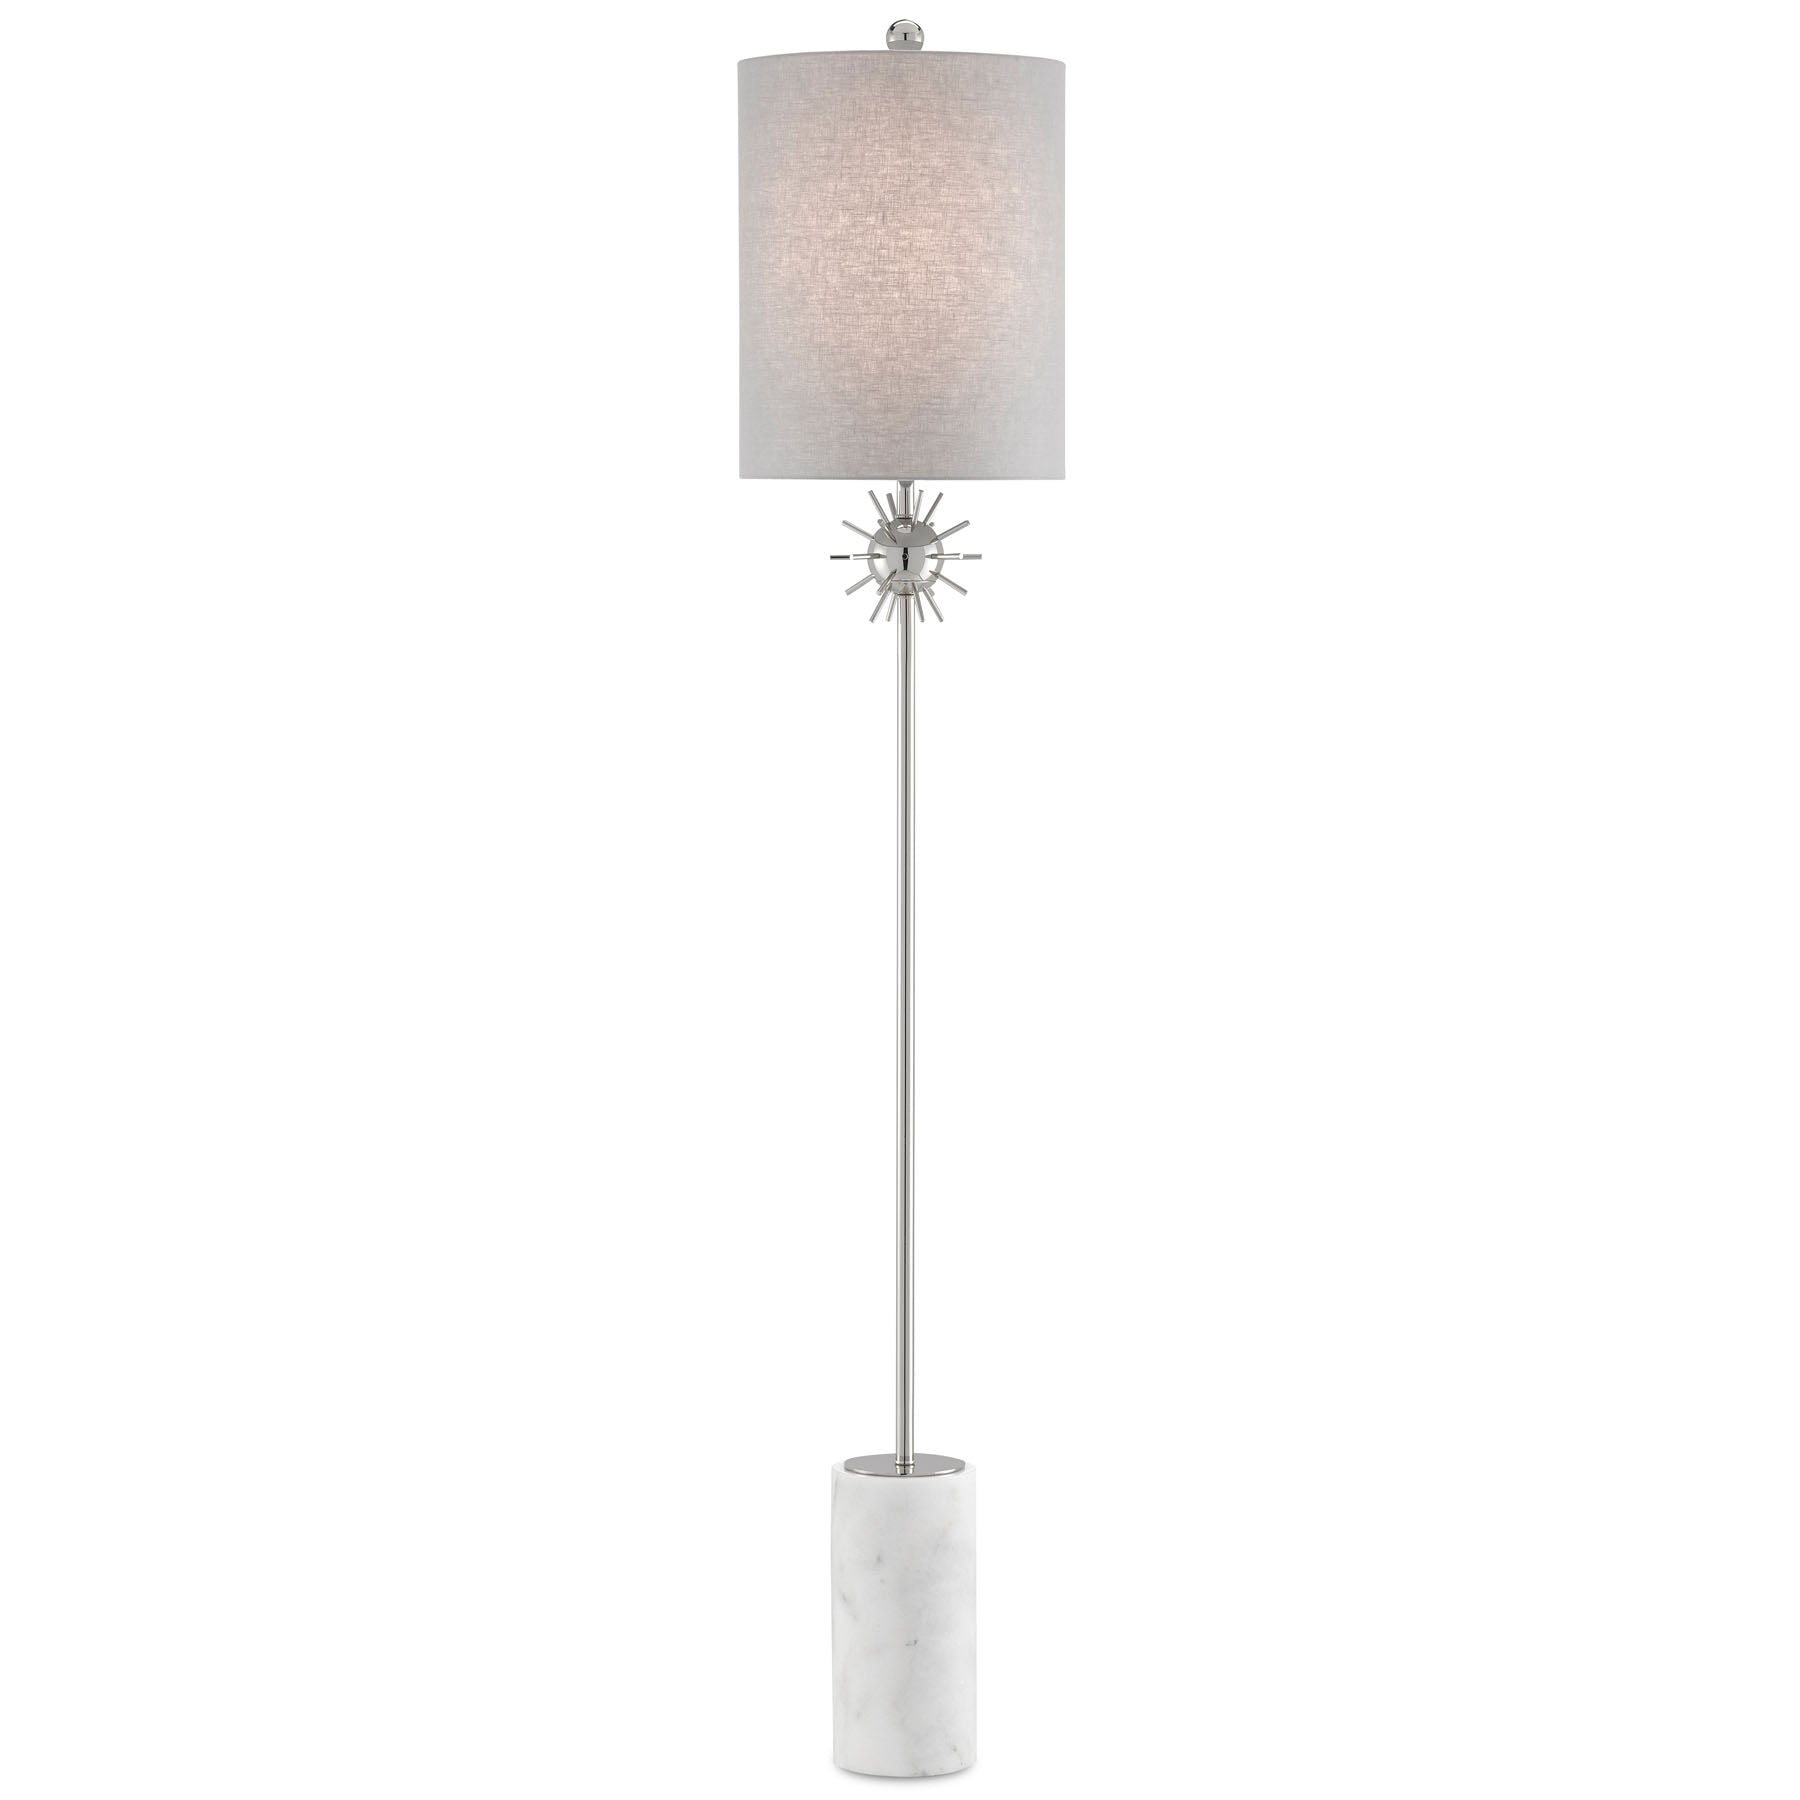 Sundrop Floor Lamp